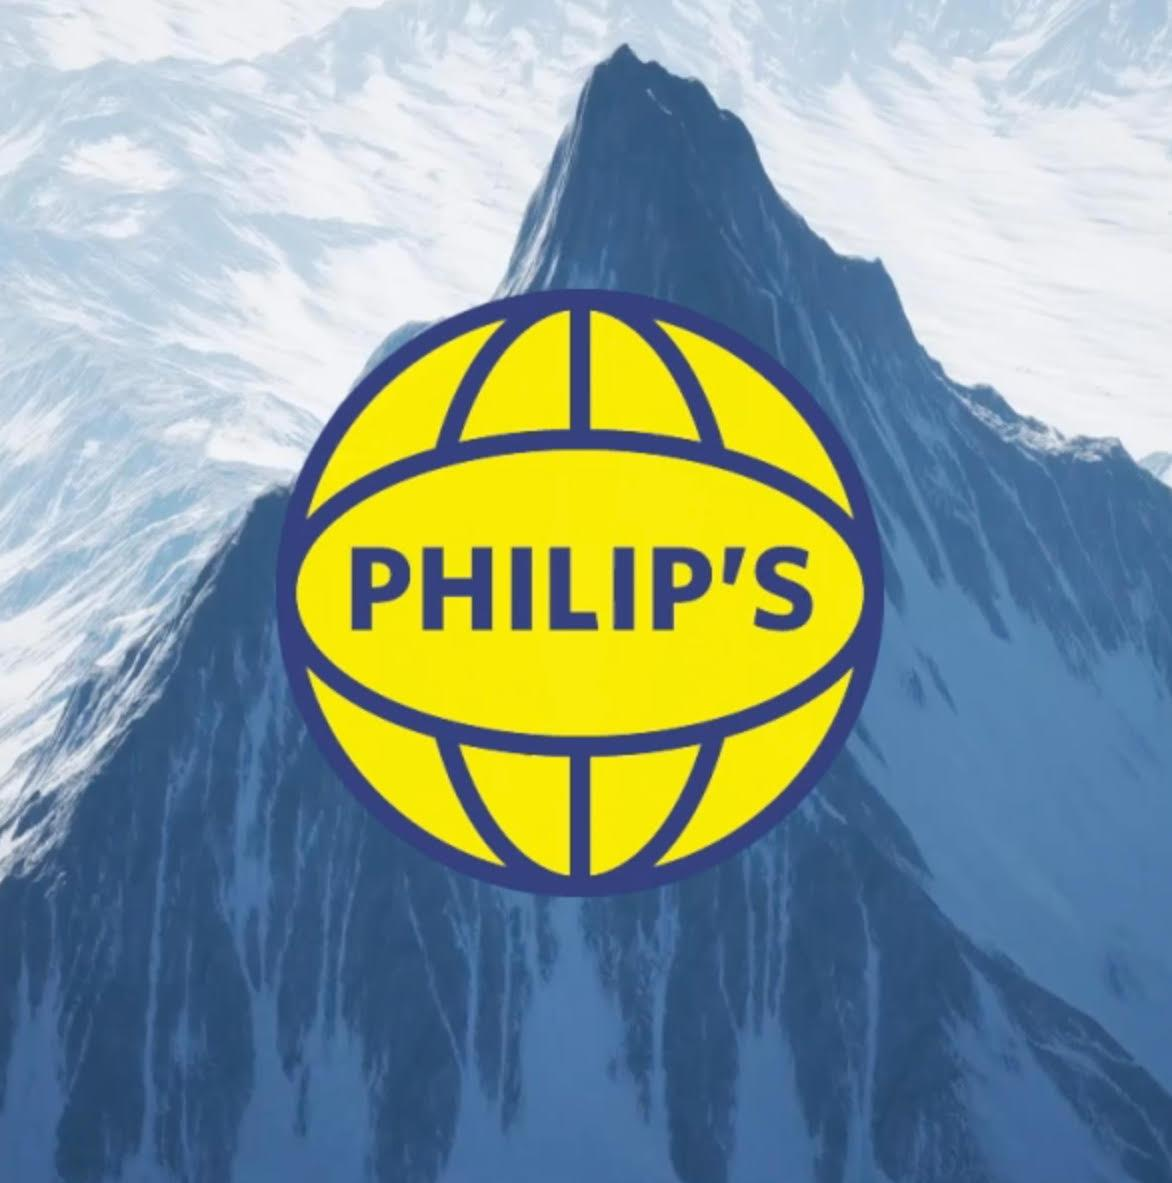 Philp's is going places: UK Number 1 Road atlas brand relaunch February  2021